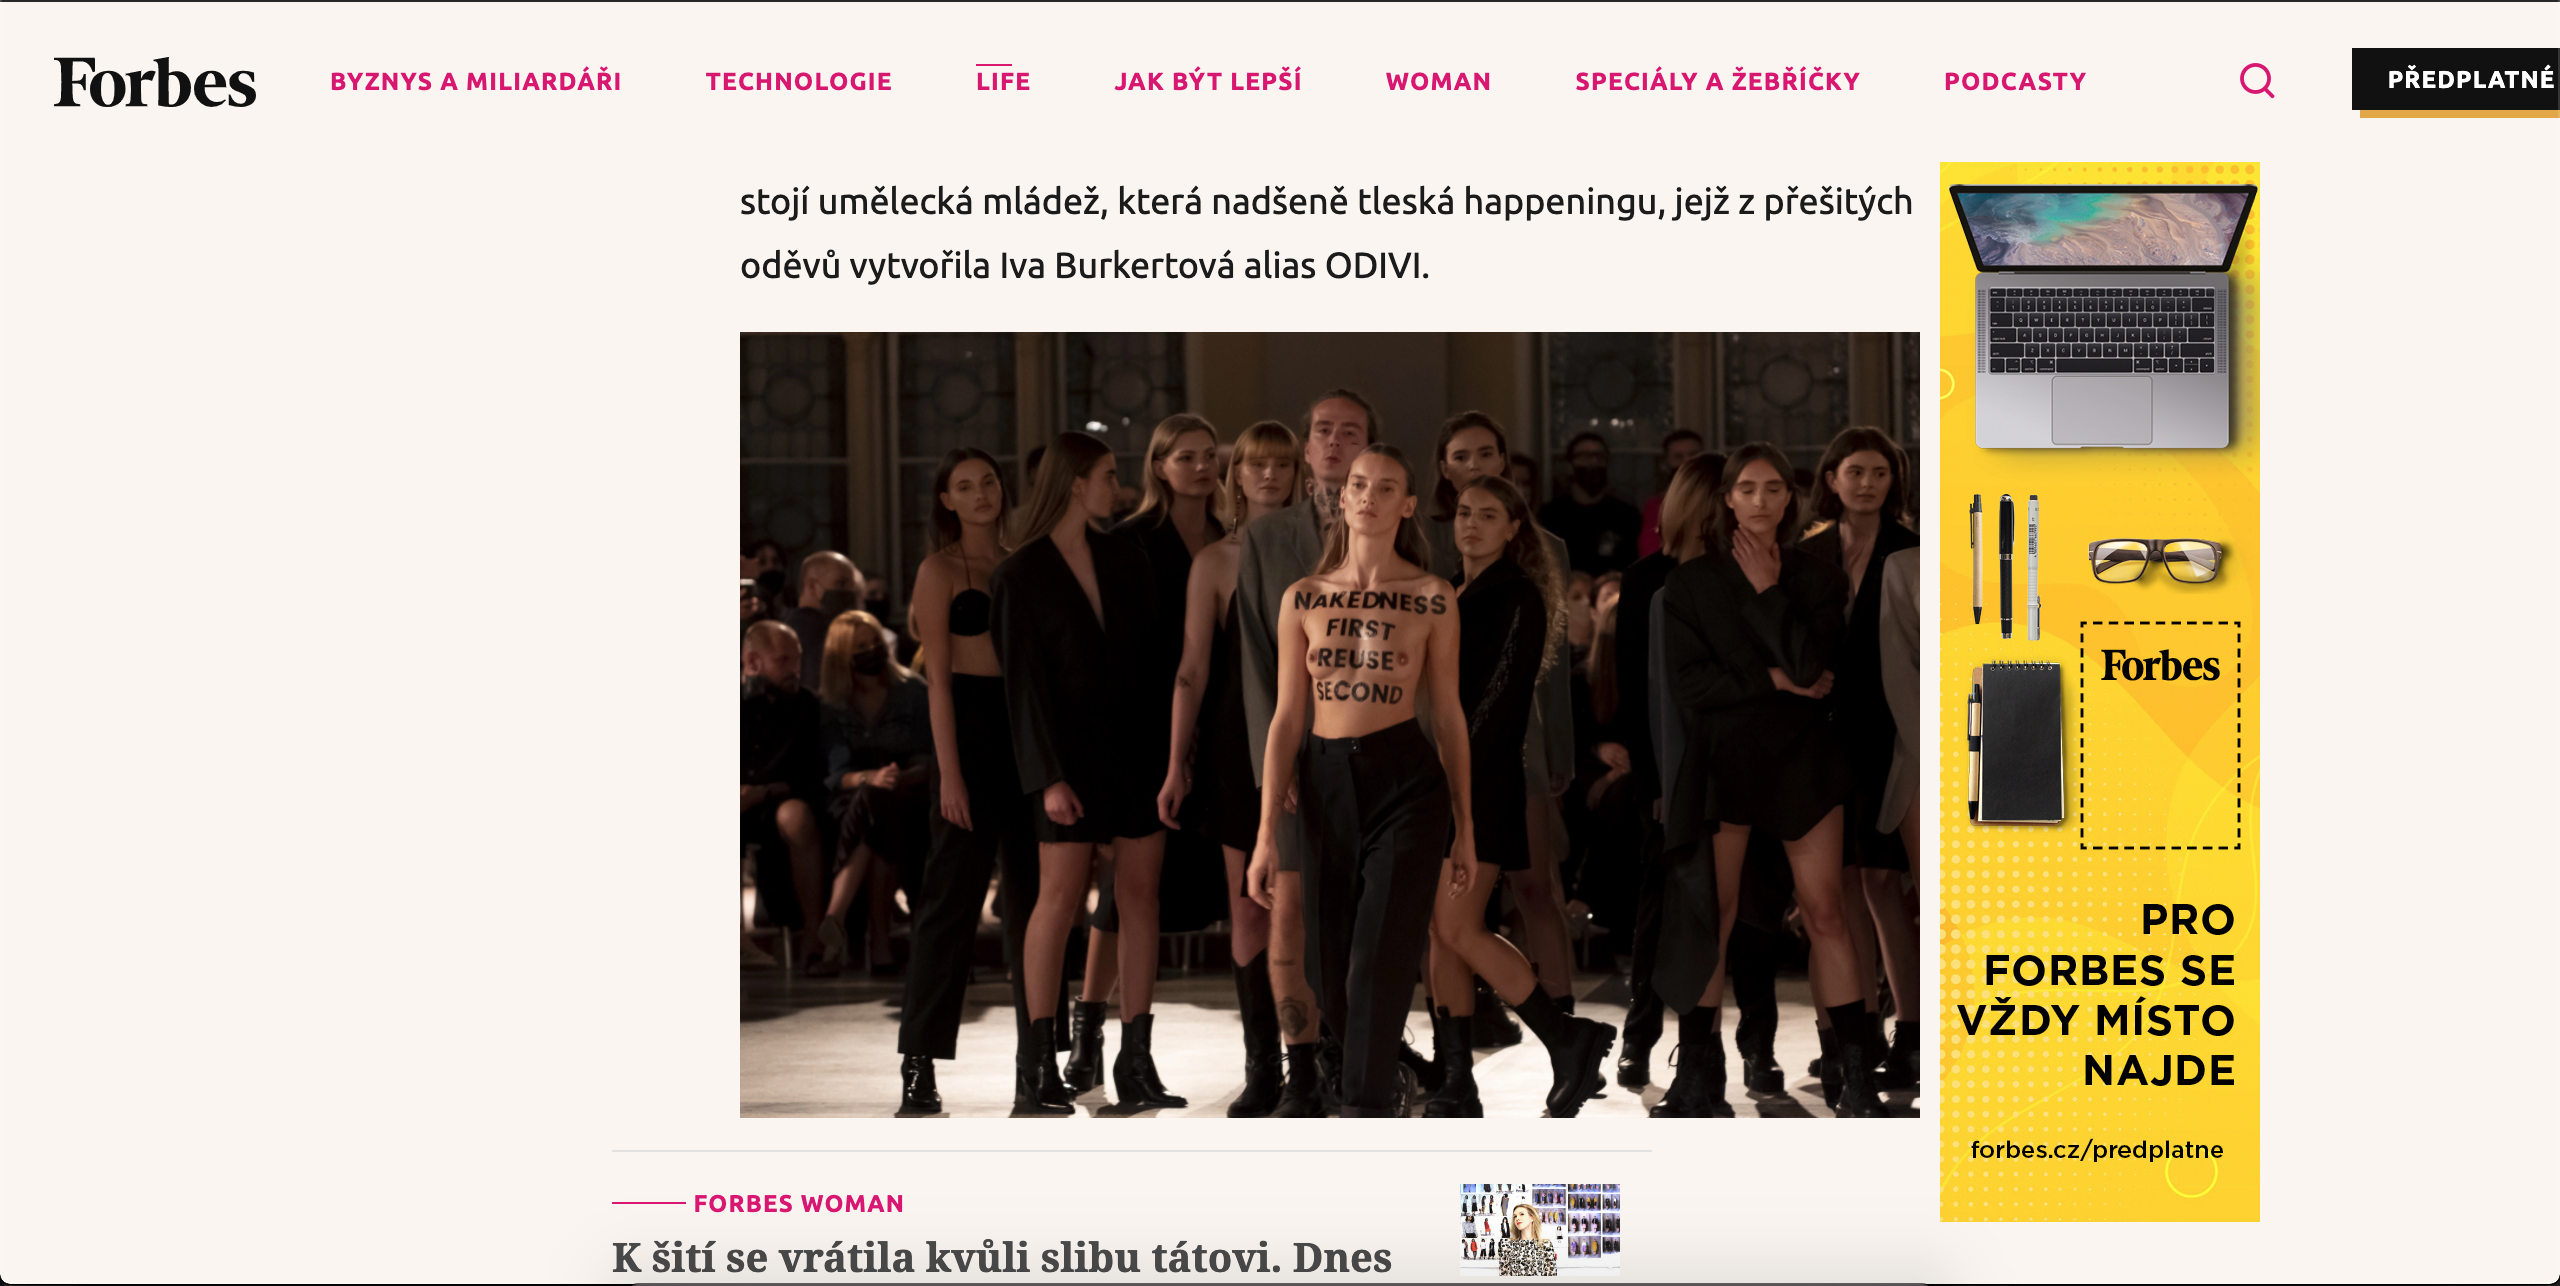 Mercedes Benz Fashion Week Prague, published in Forbes Cz